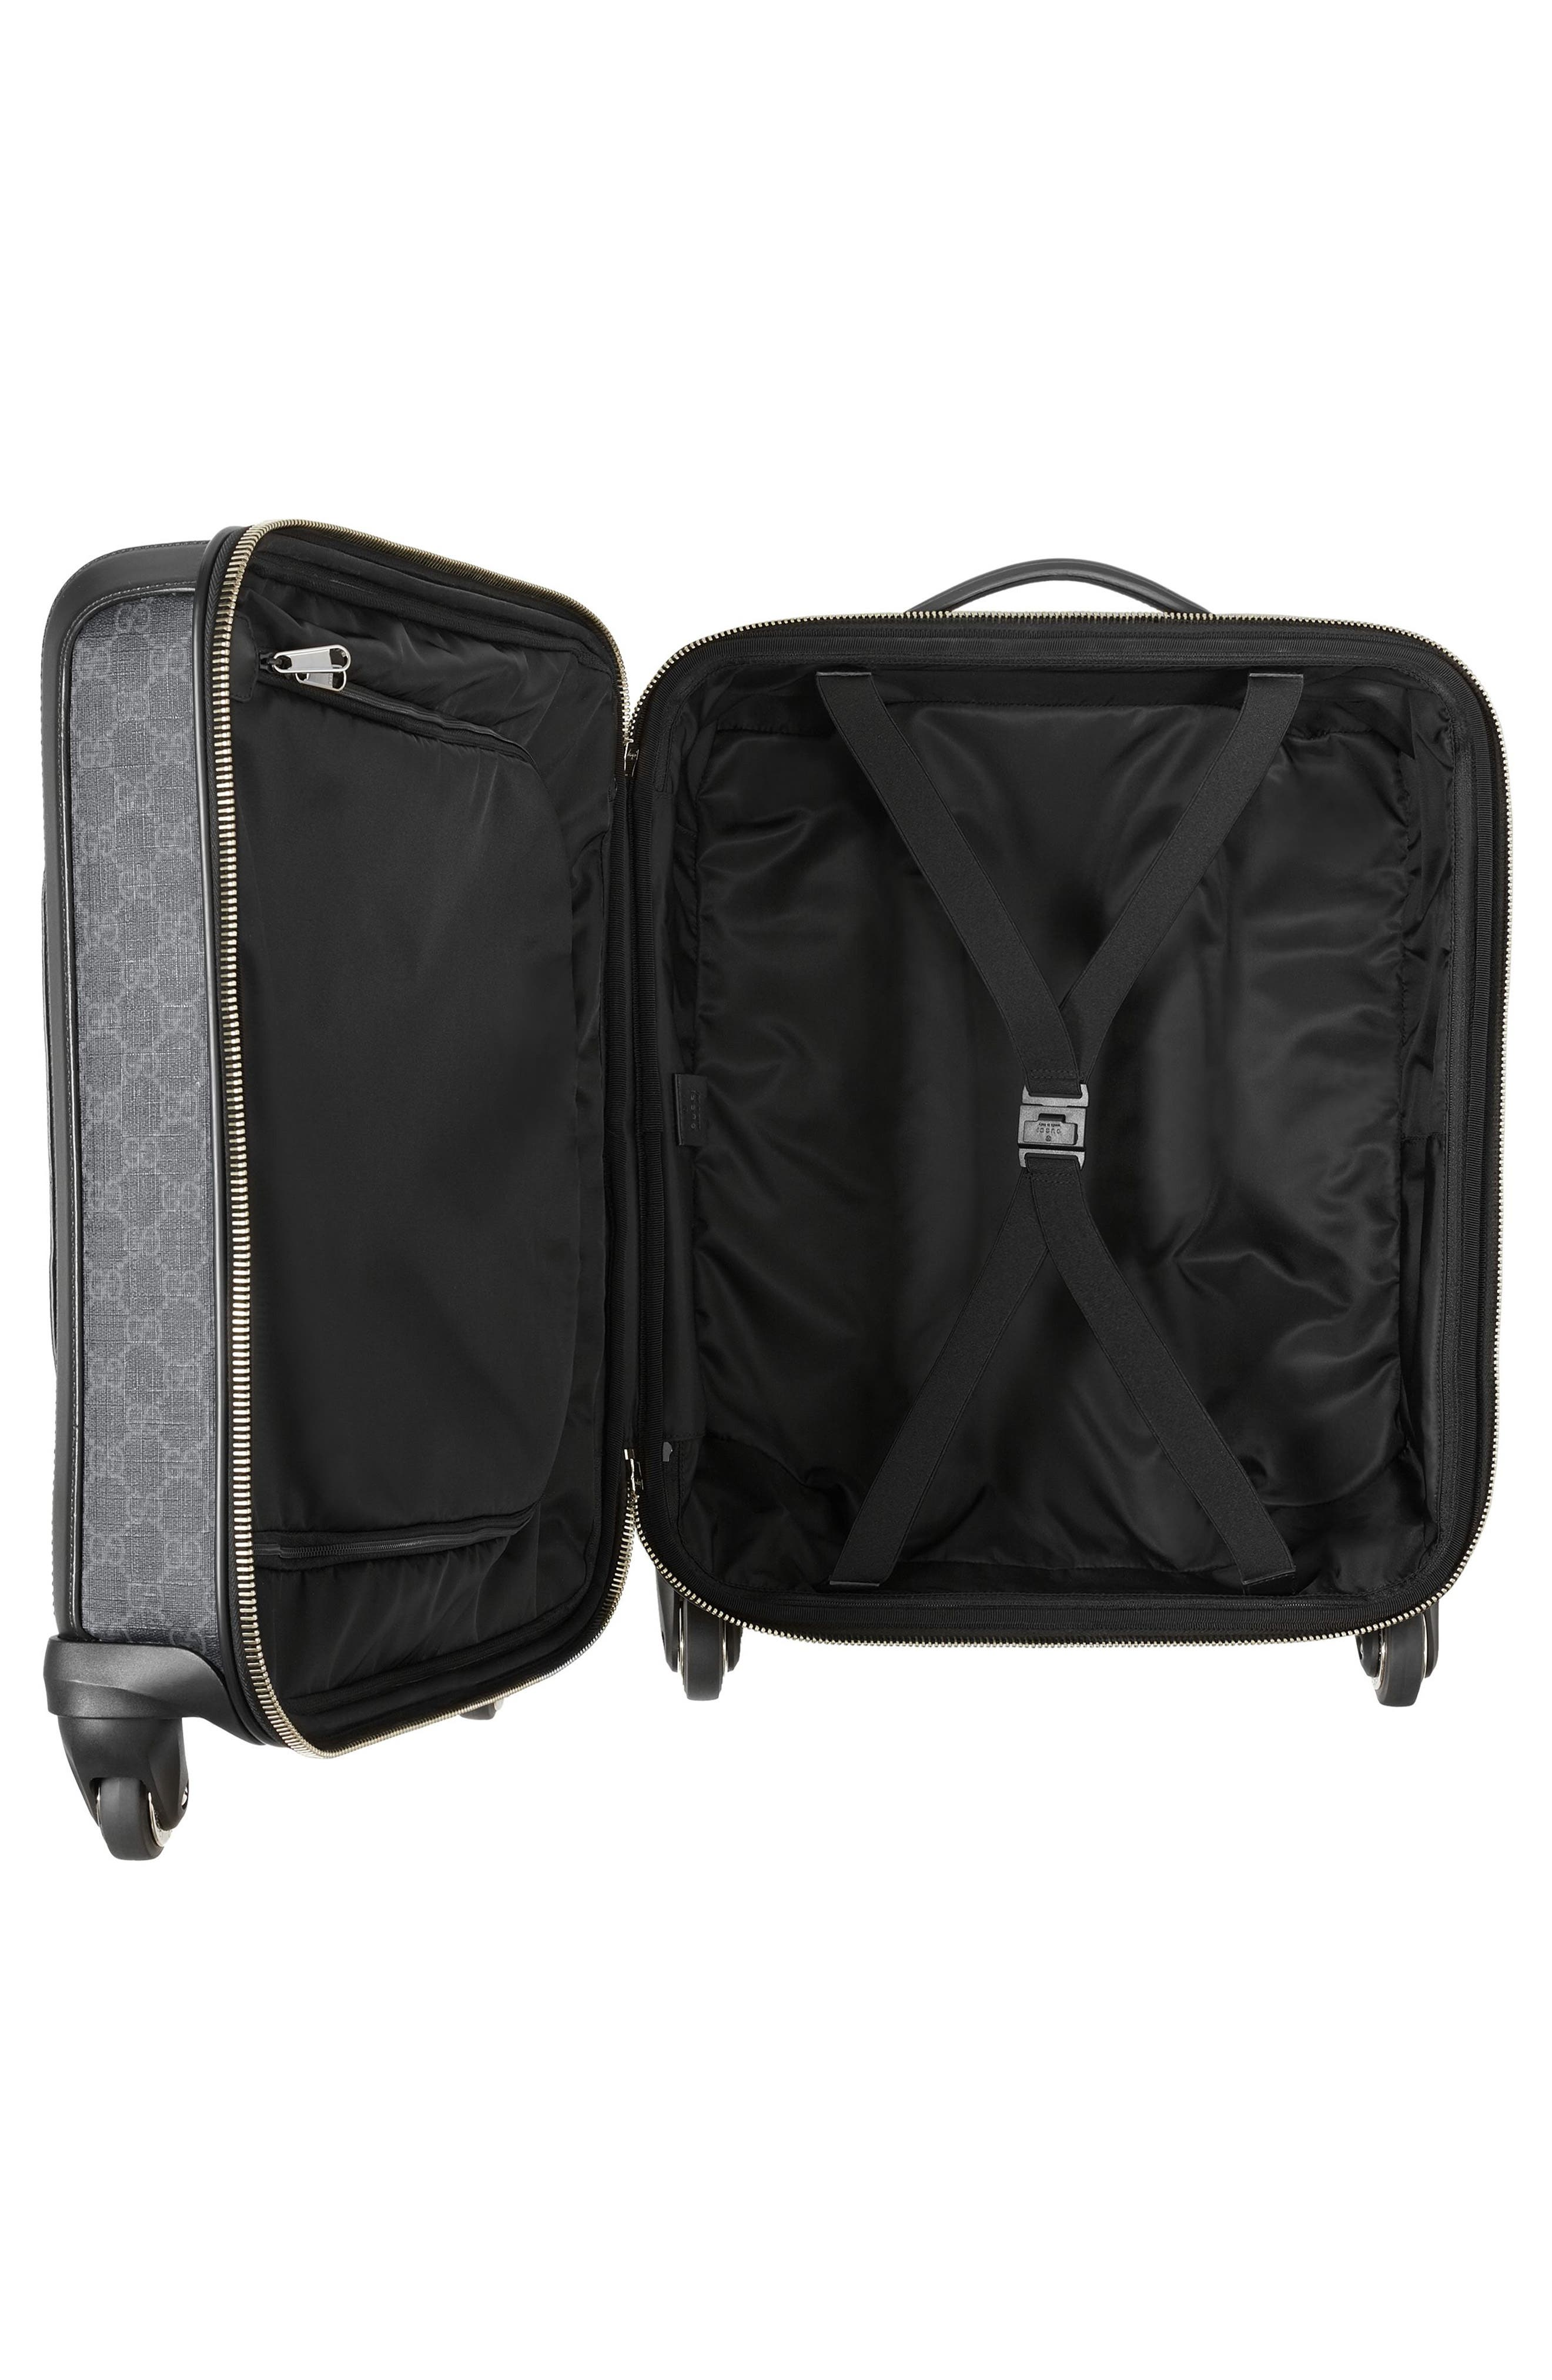 Gran Turismo Carry-On,                             Alternate thumbnail 3, color,                             Black